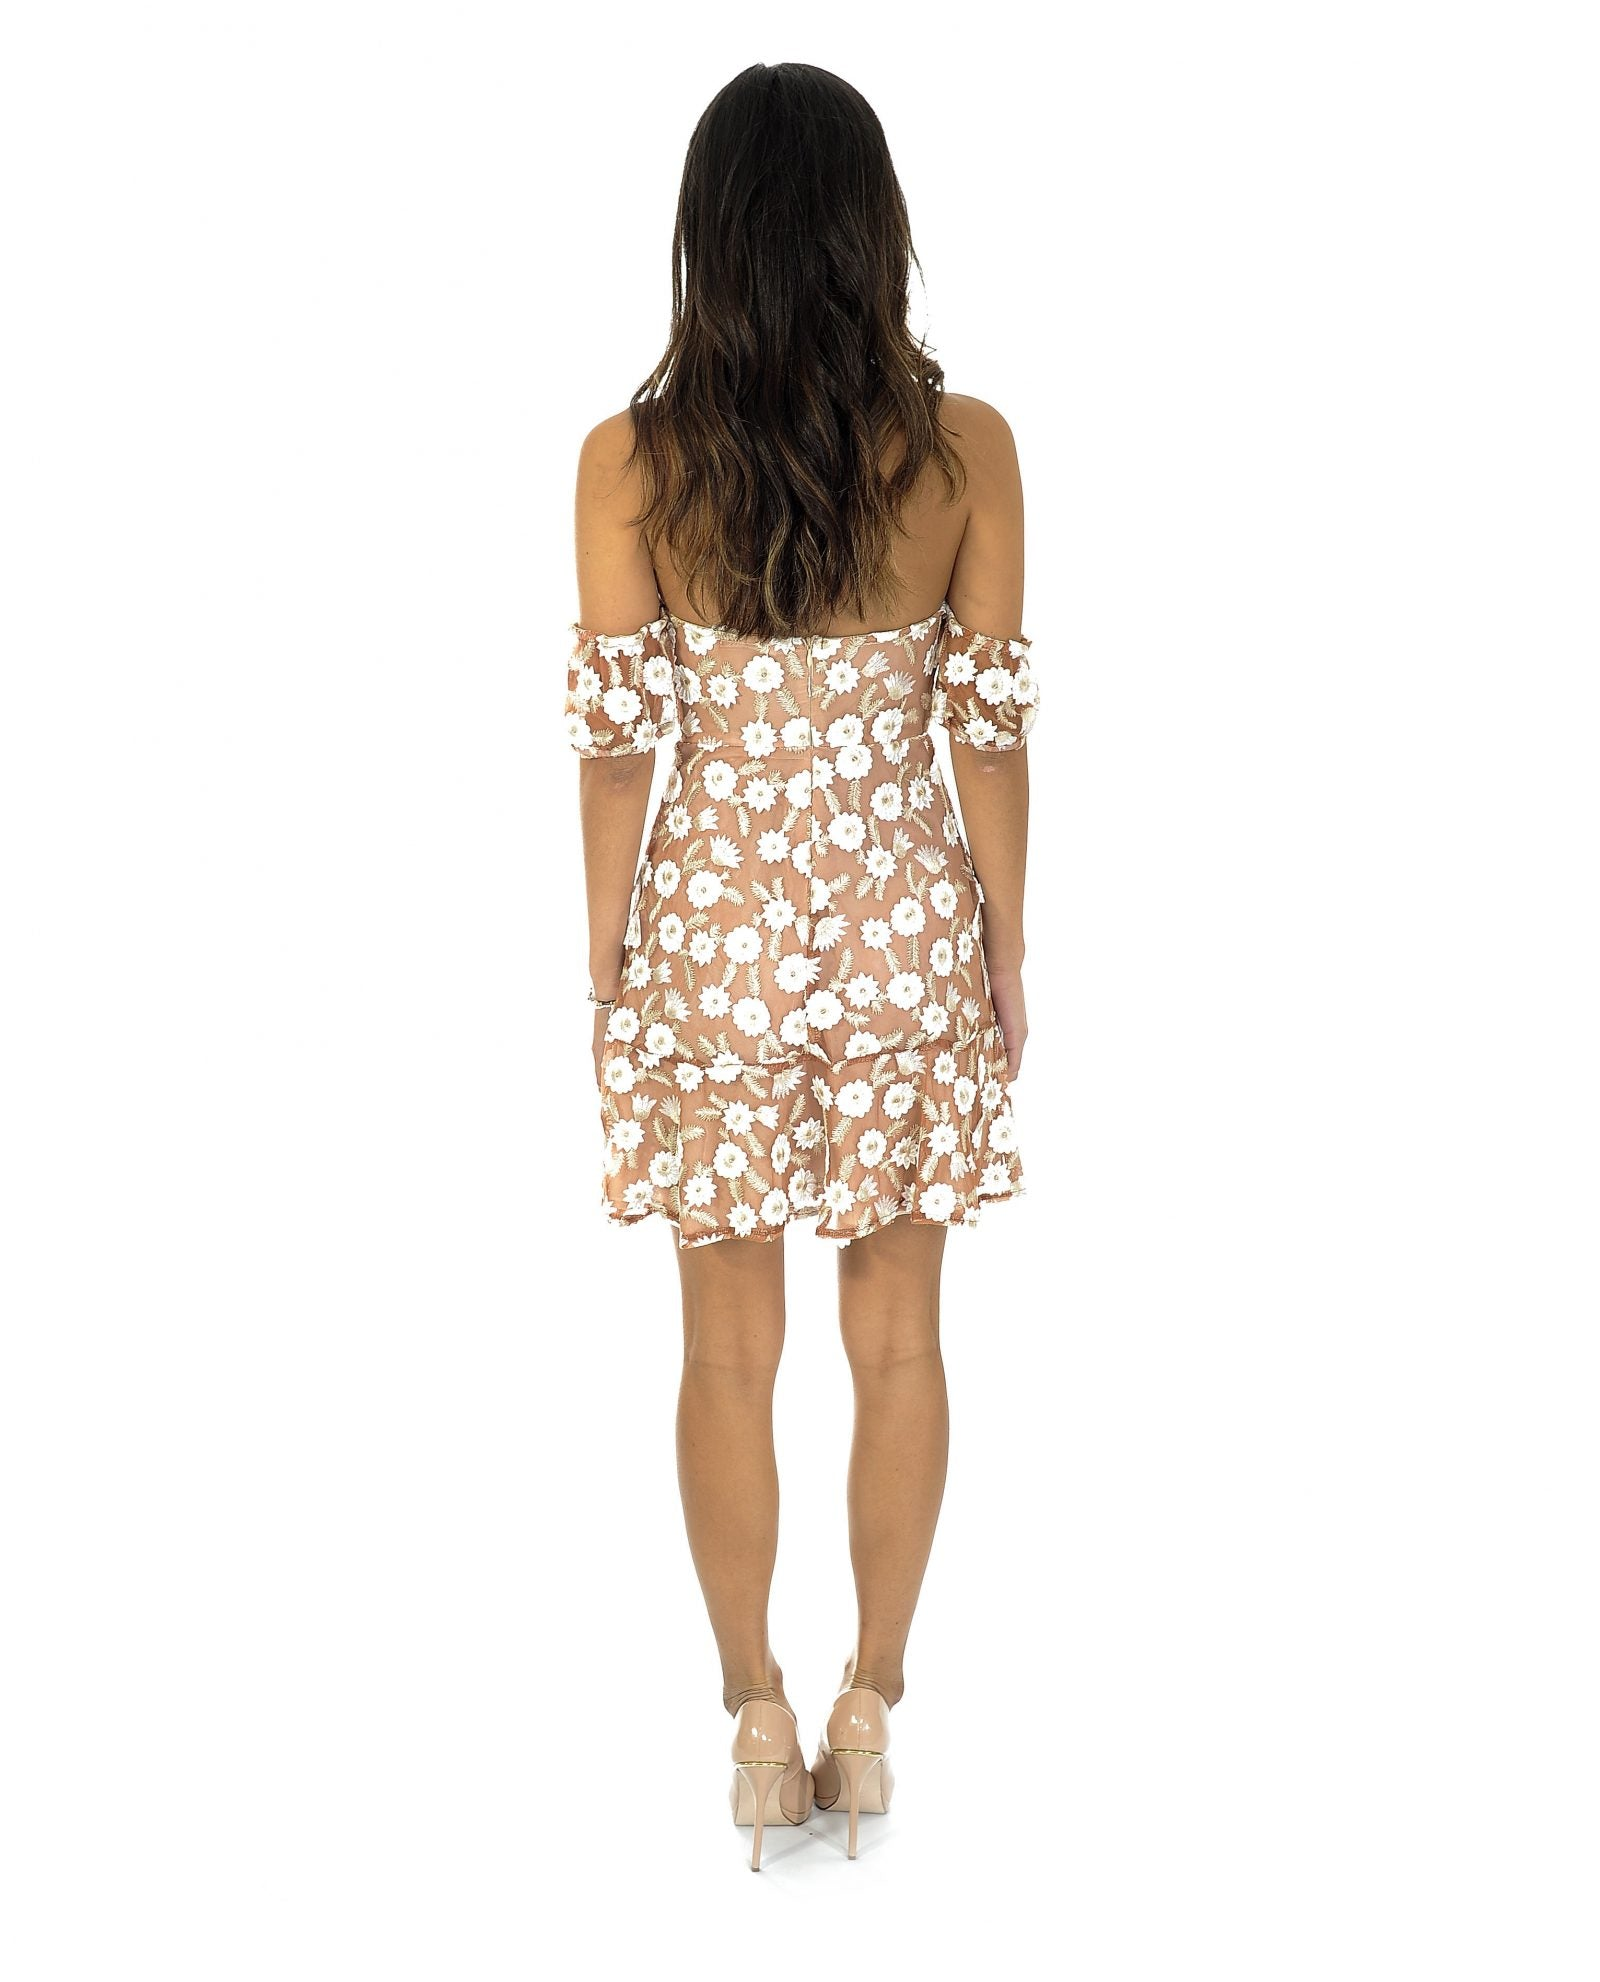 NUDE & WHITE FLORAL BANDEAU DRESS_AAA0373